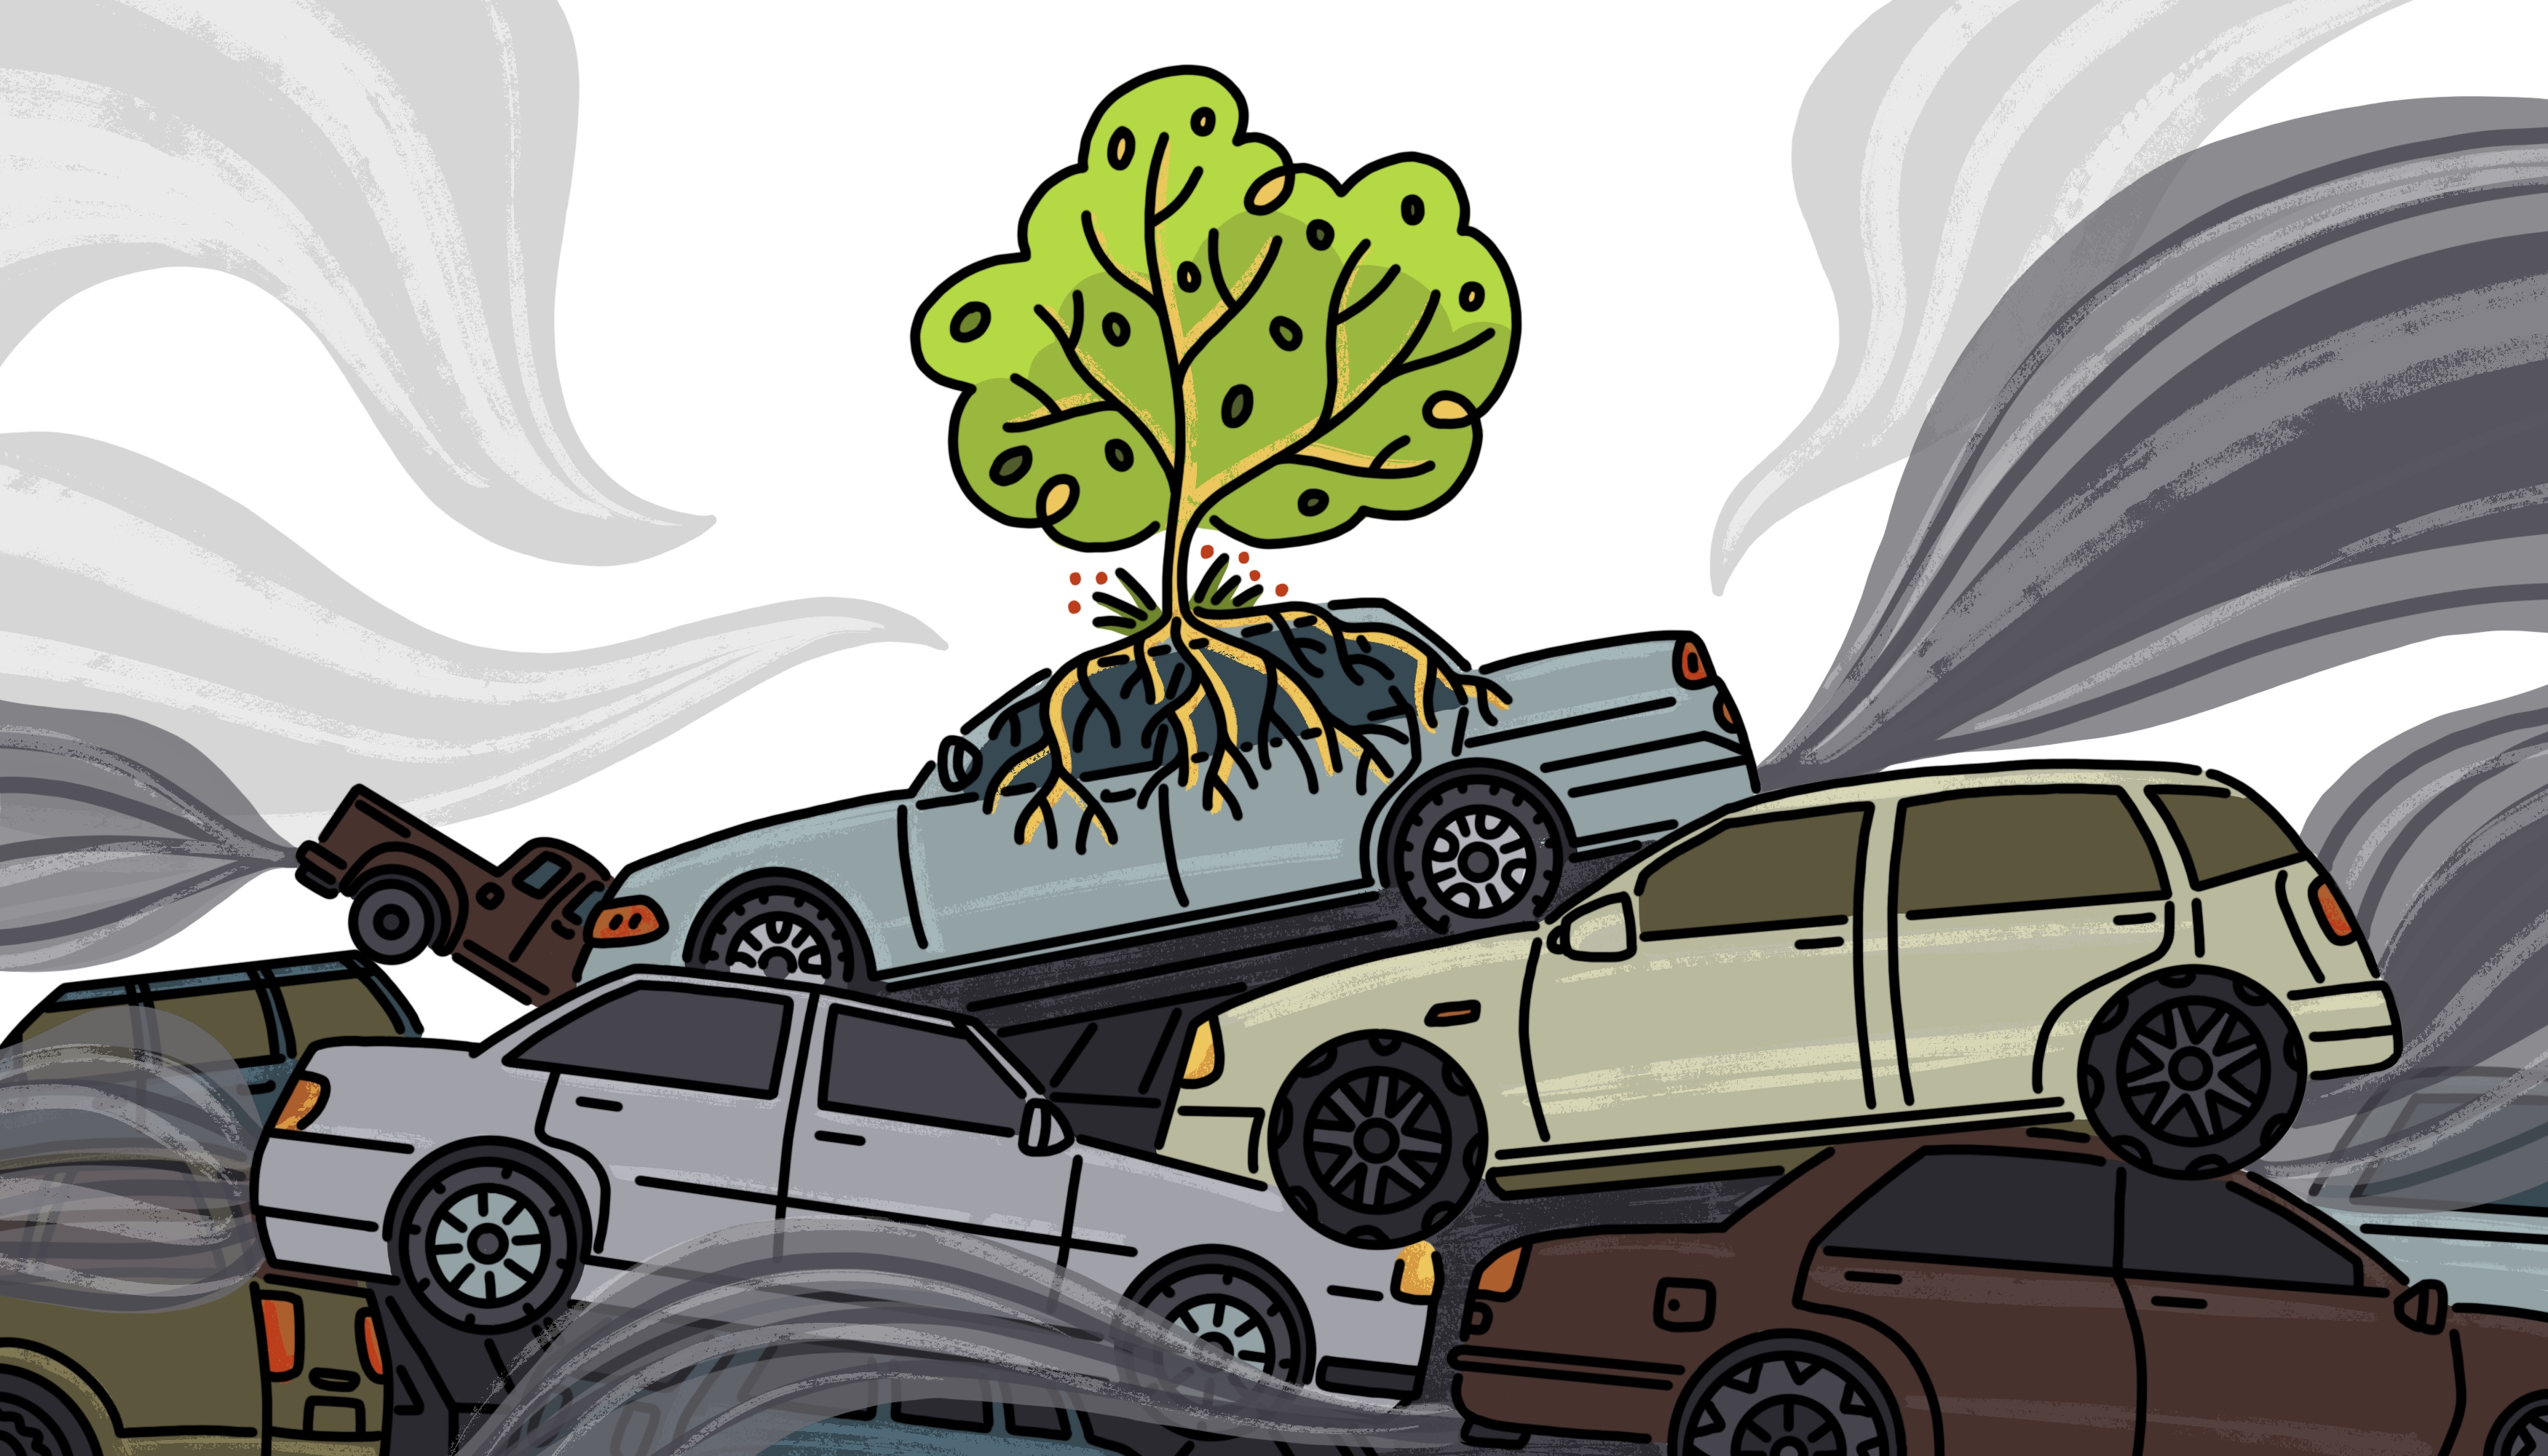 A junkyard pile up of old cars. Smog fills the air. A single tree has taken root at the top of the pile. Illustration.